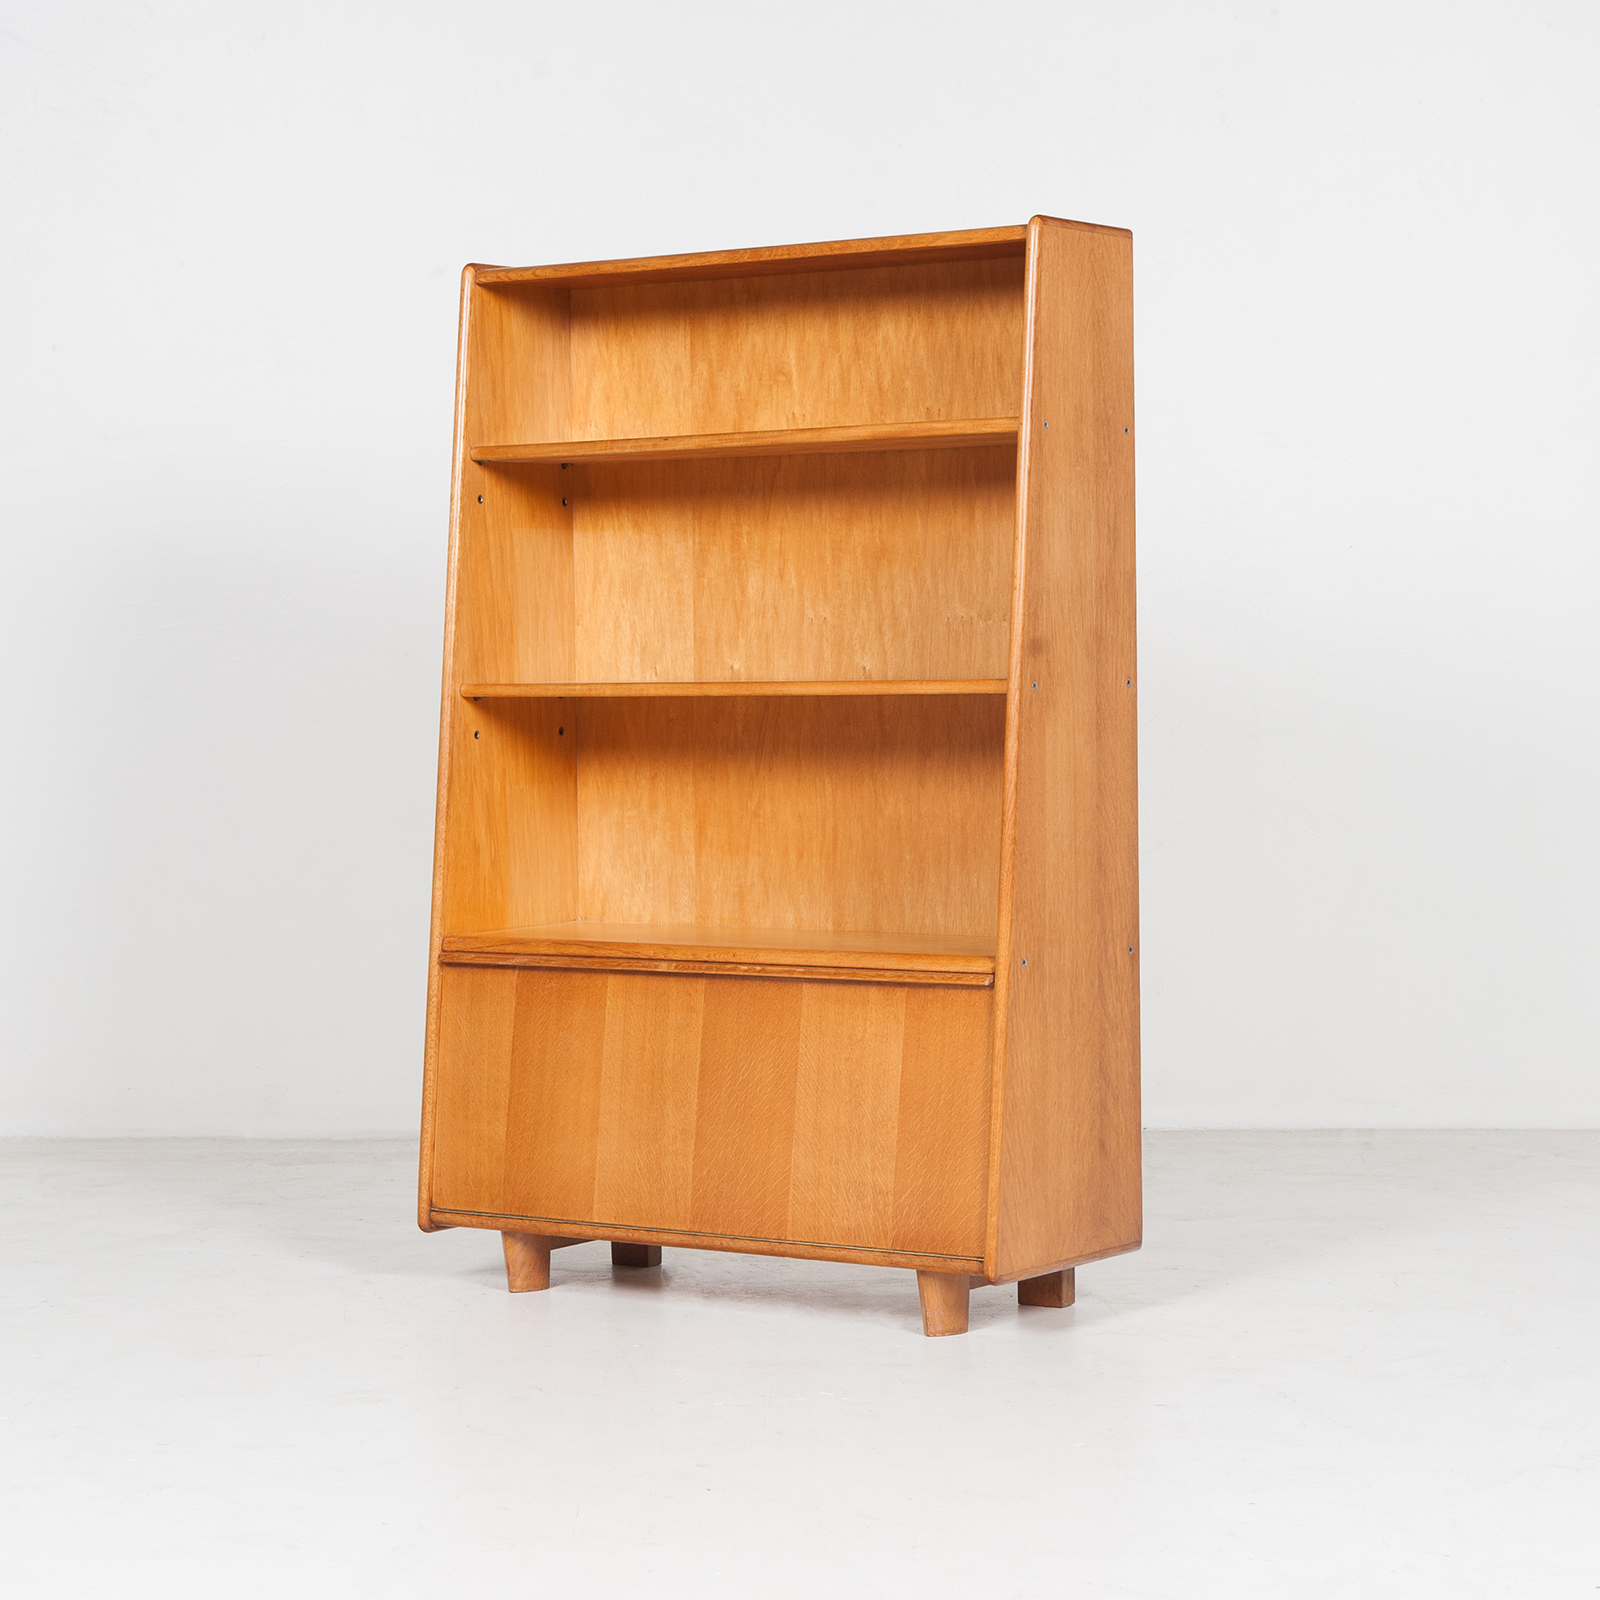 Model Be 03 Oak Series Bookcase By Cees Braakman For Pastoe, 1950s, The Netherlands 34